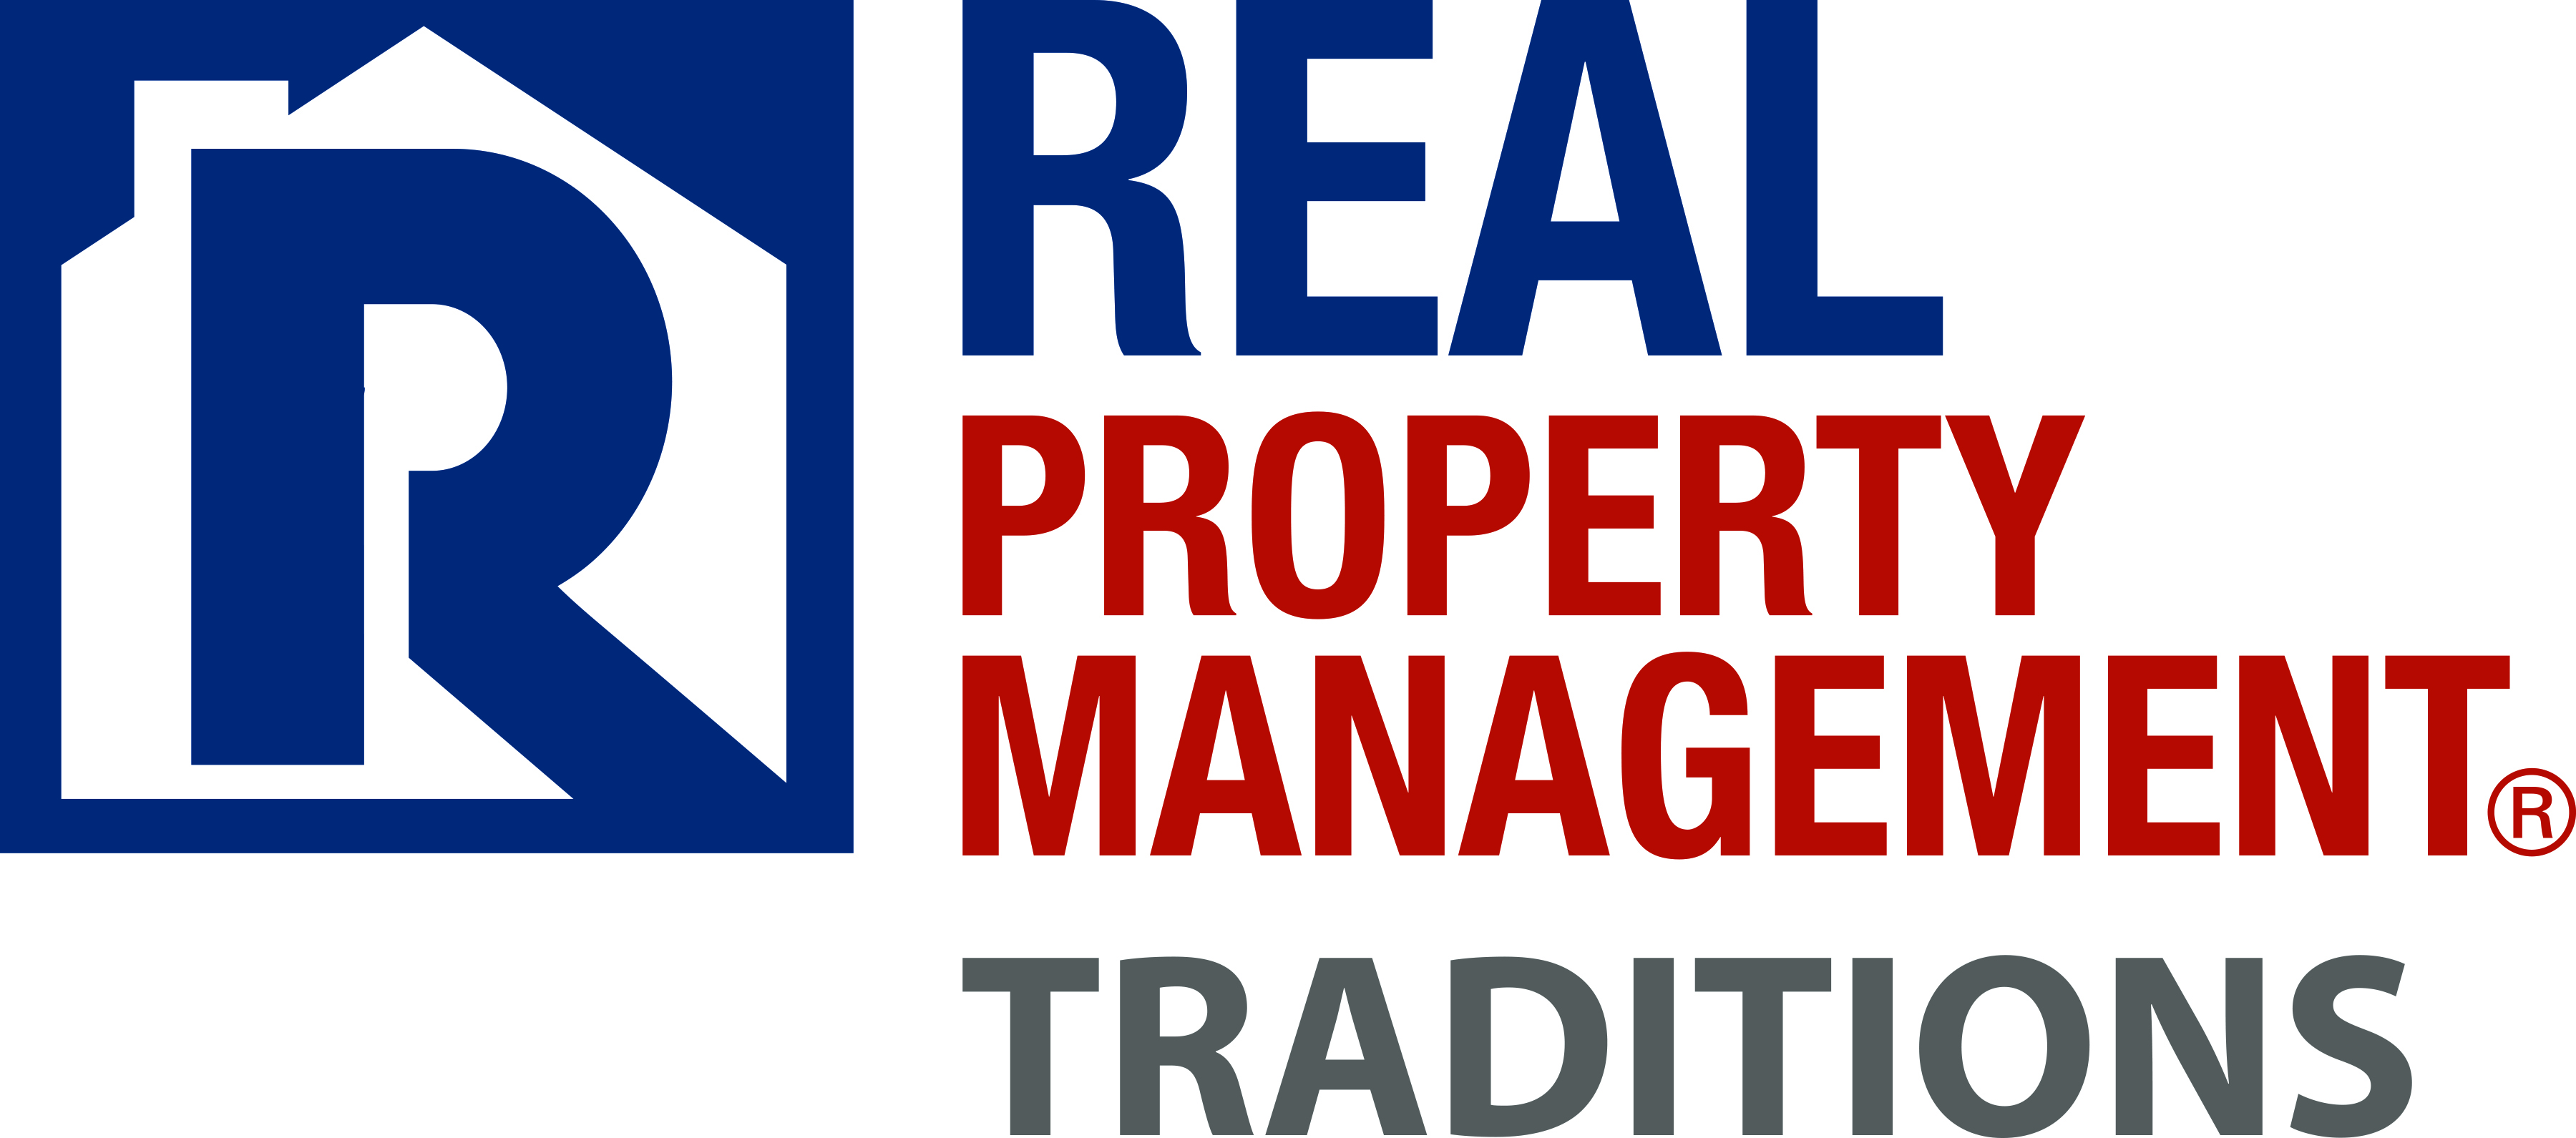 >Real Property Management Traditions